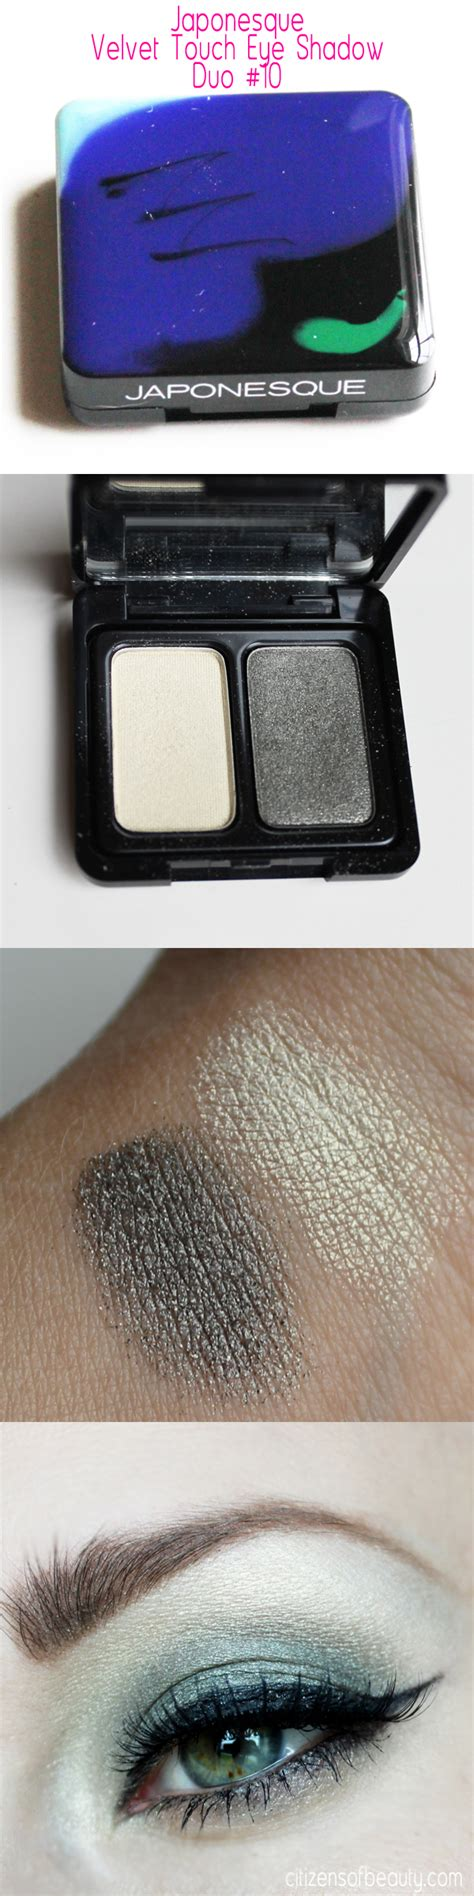 Review Eyeshadow Inez 05 japonesque velvet touch eye shadow and makeup brush review